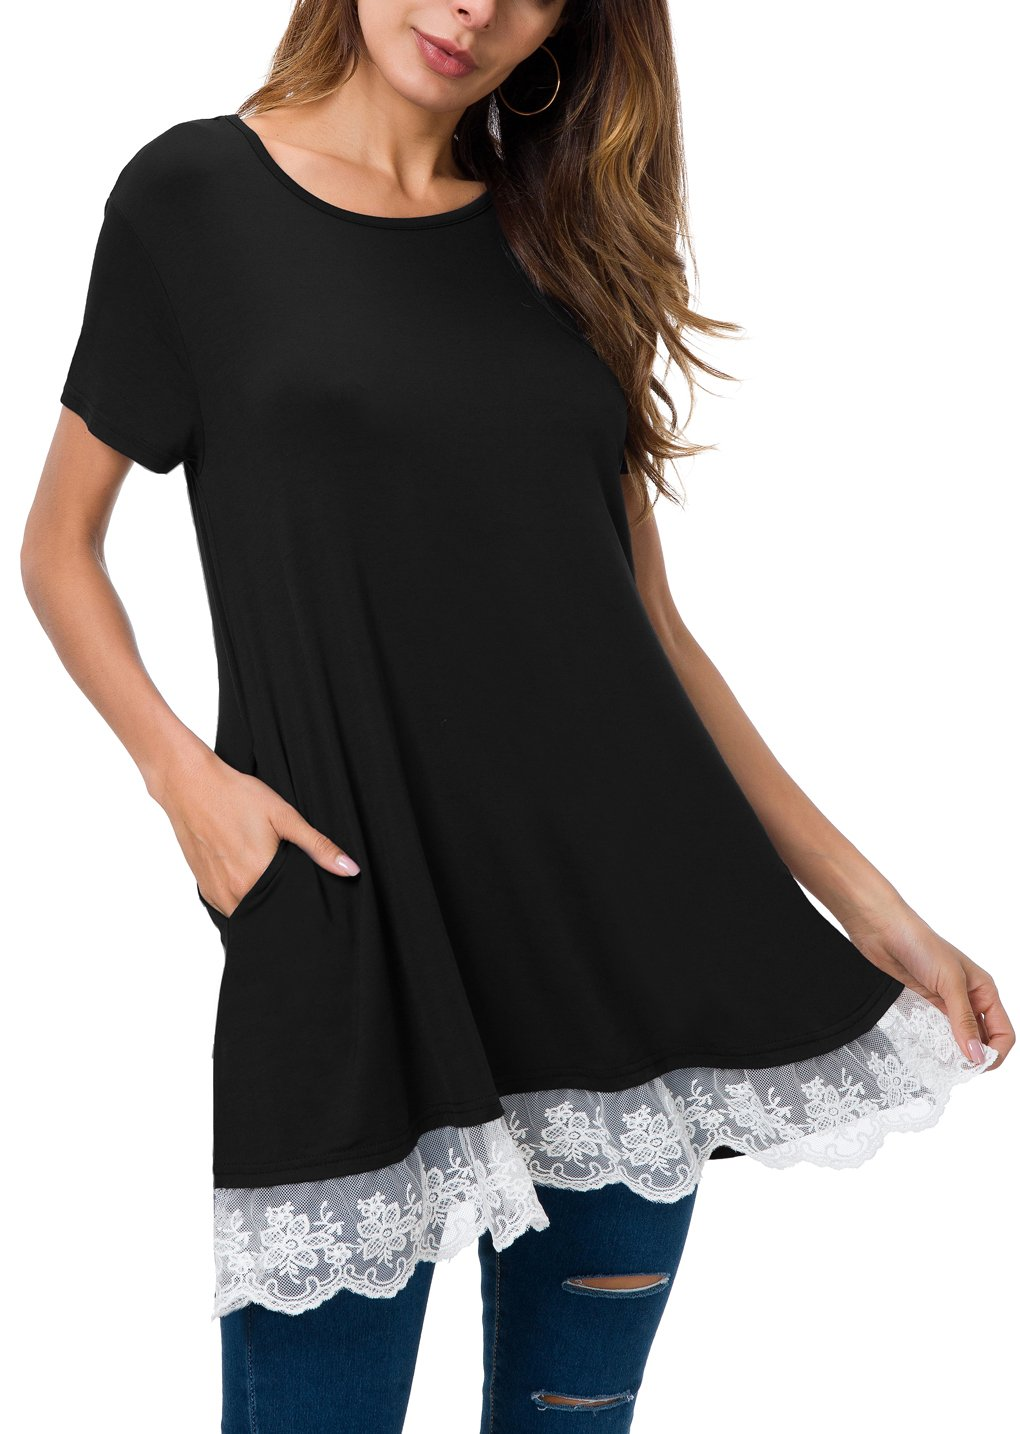 Mounblun Women Lace Short Sleeve Tunic Top Blouse with Pocket (XX-Large, Shortsleeve-Black) by Mounblun (Image #1)